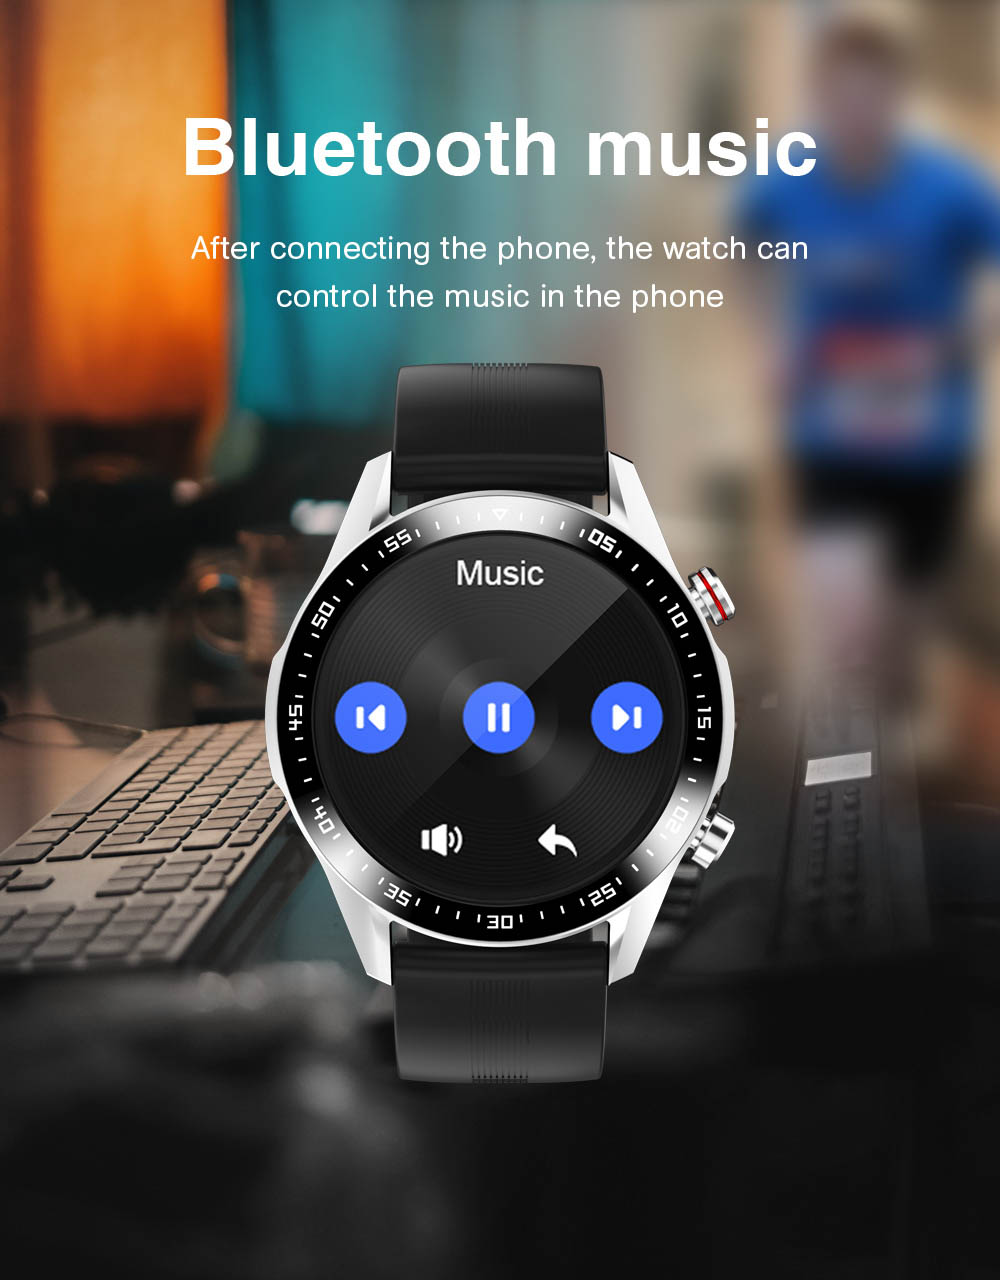 H53d8df387c3e4fe58deb2a735e456fb1S E1-2 Smart Watch Men Bluetooth Call Custom Dial Full Touch Screen Waterproof Smartwatch For Android IOS Sports Fitness Tracker